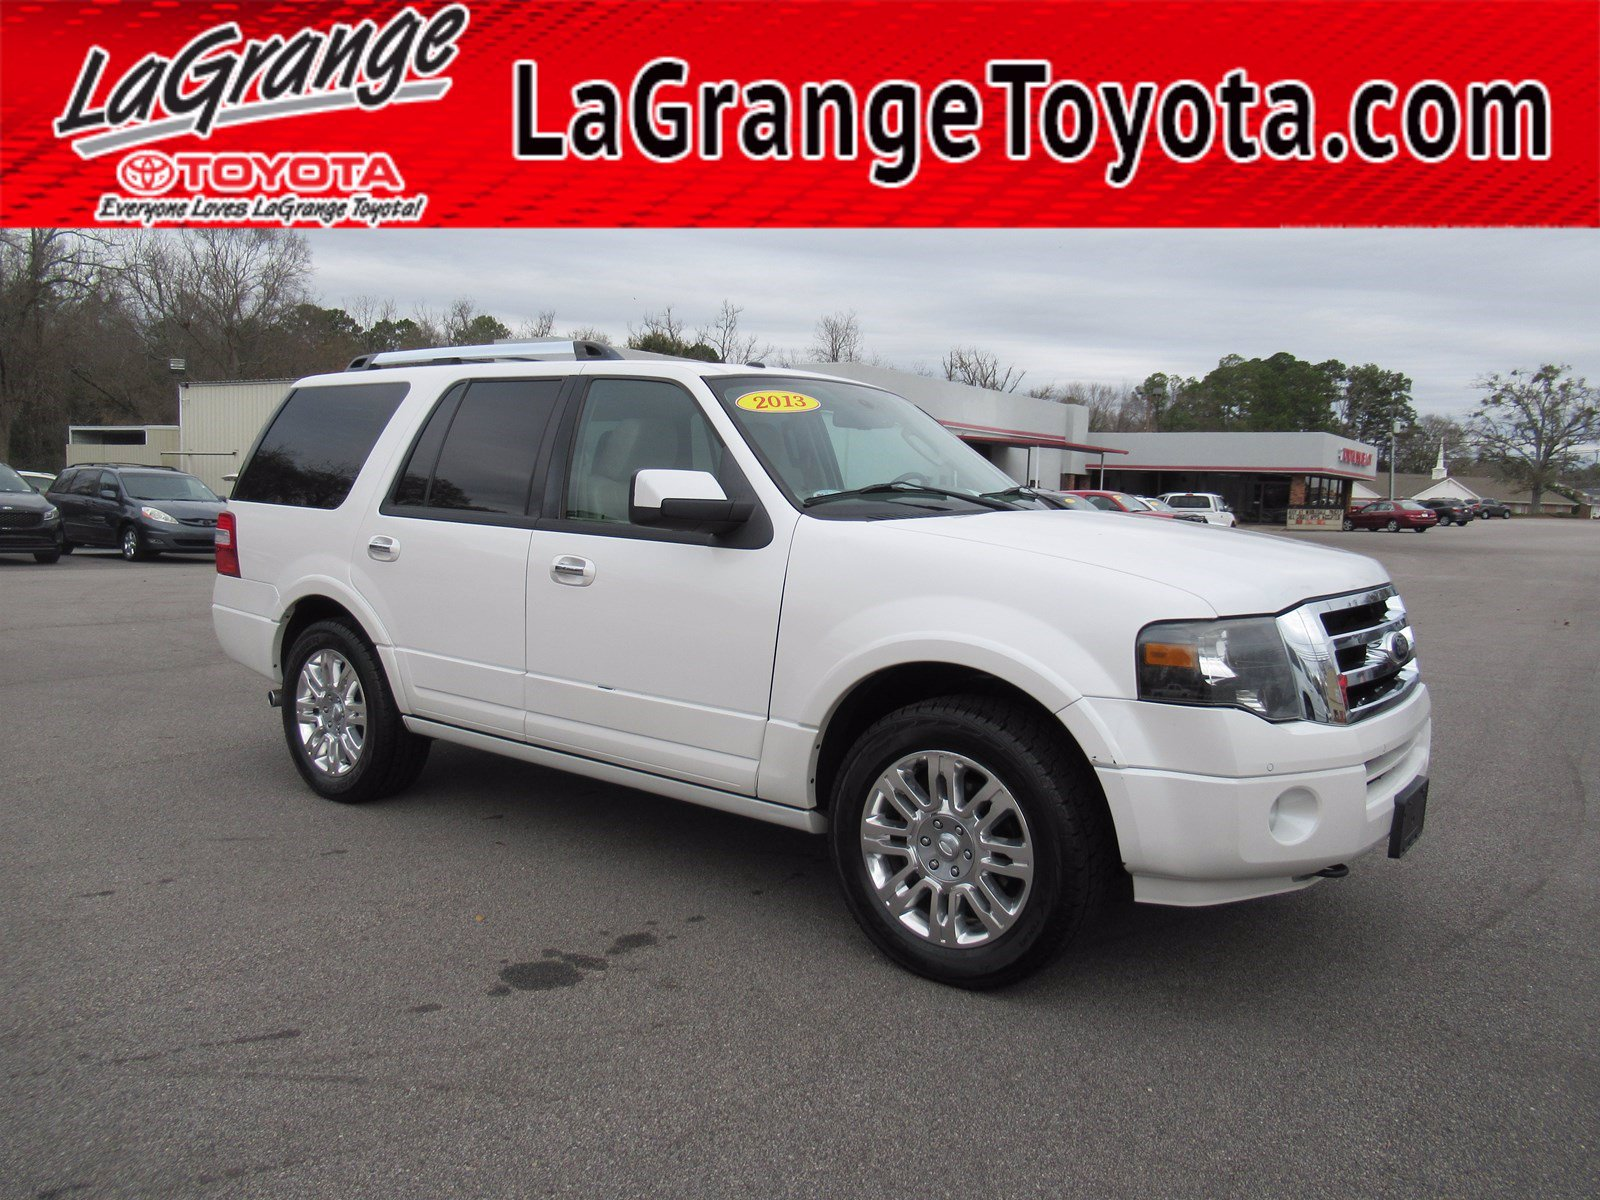 Pre-Owned 2013 Ford Expedition 4WD 4dr Limited